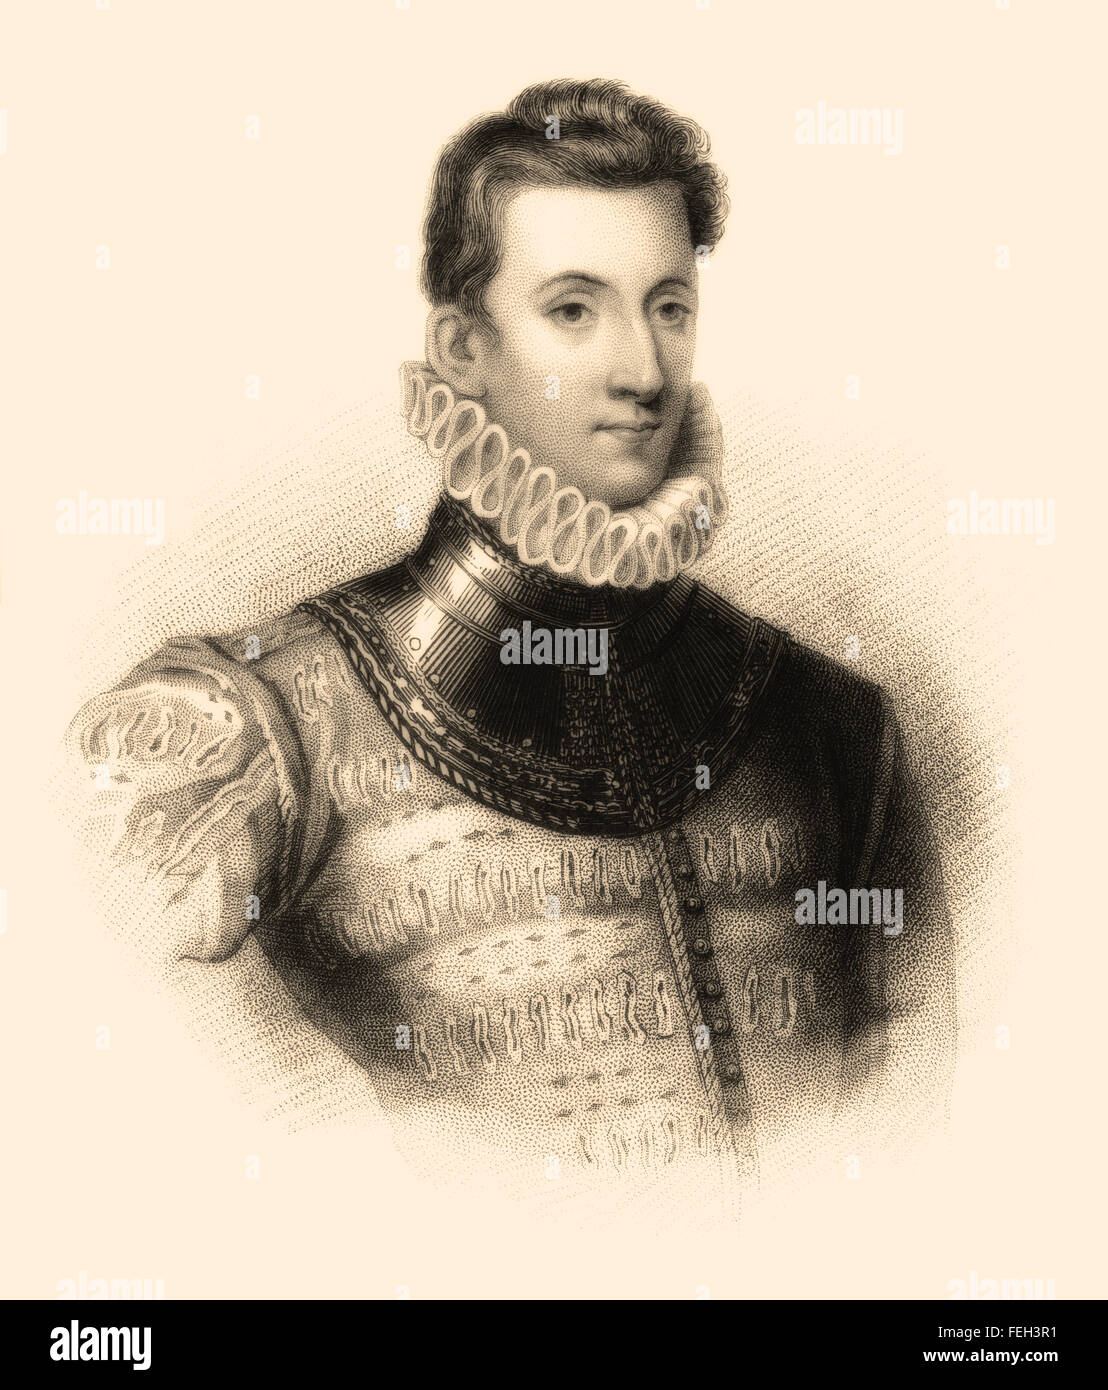 Sir Philip Sidney, 1554-1586, an English poet, courtier, scholar and soldier - Stock Image